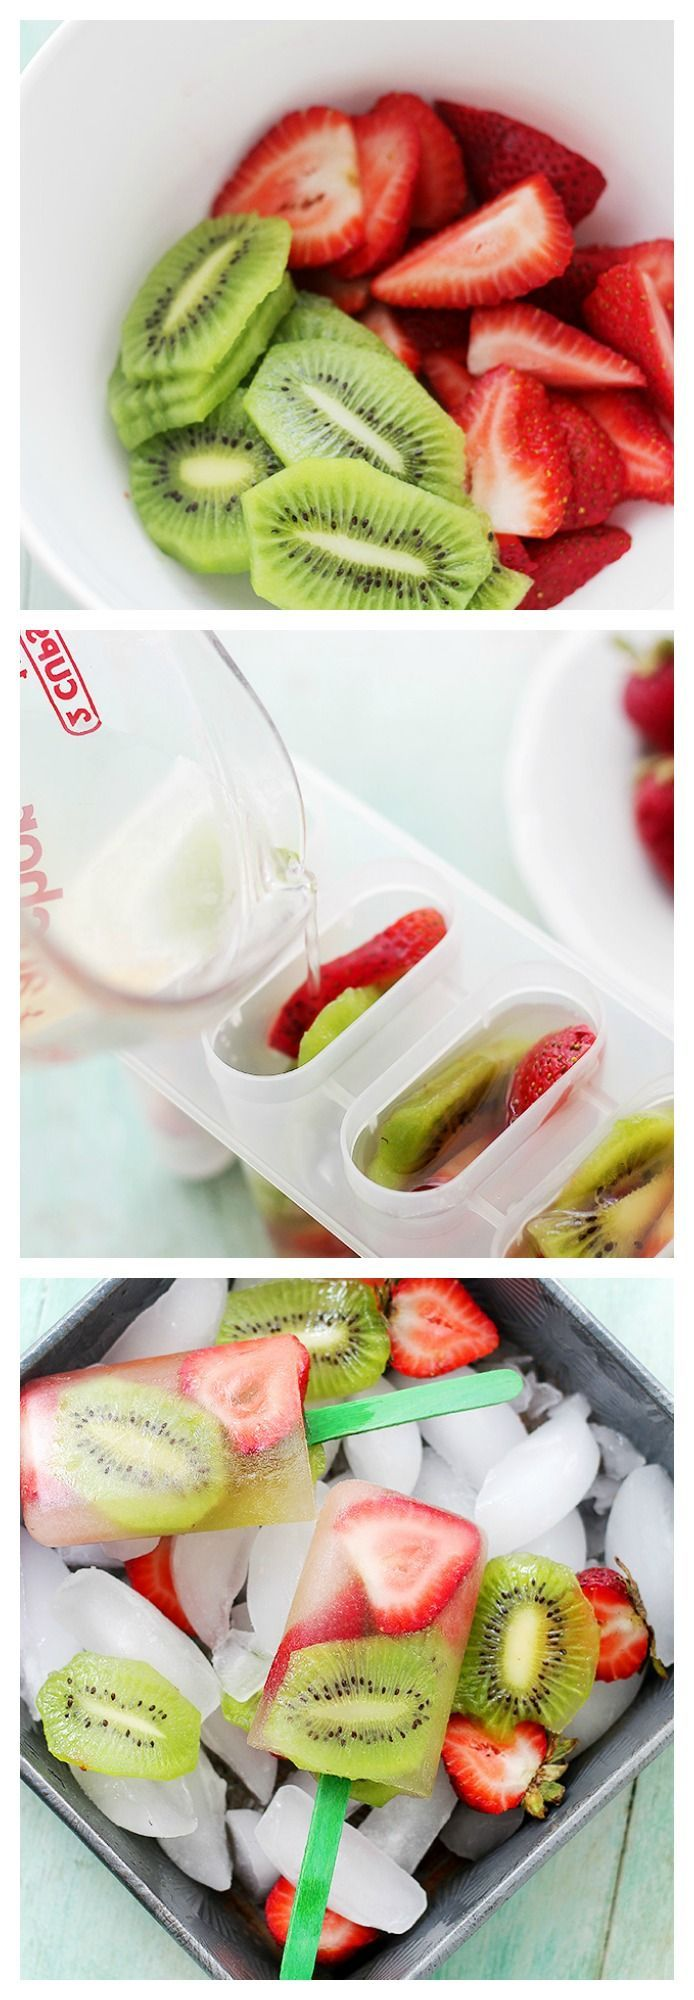 Strawberry Kiwi Popsicles | www.diethood.com | Super easy, delicious, and healthy!